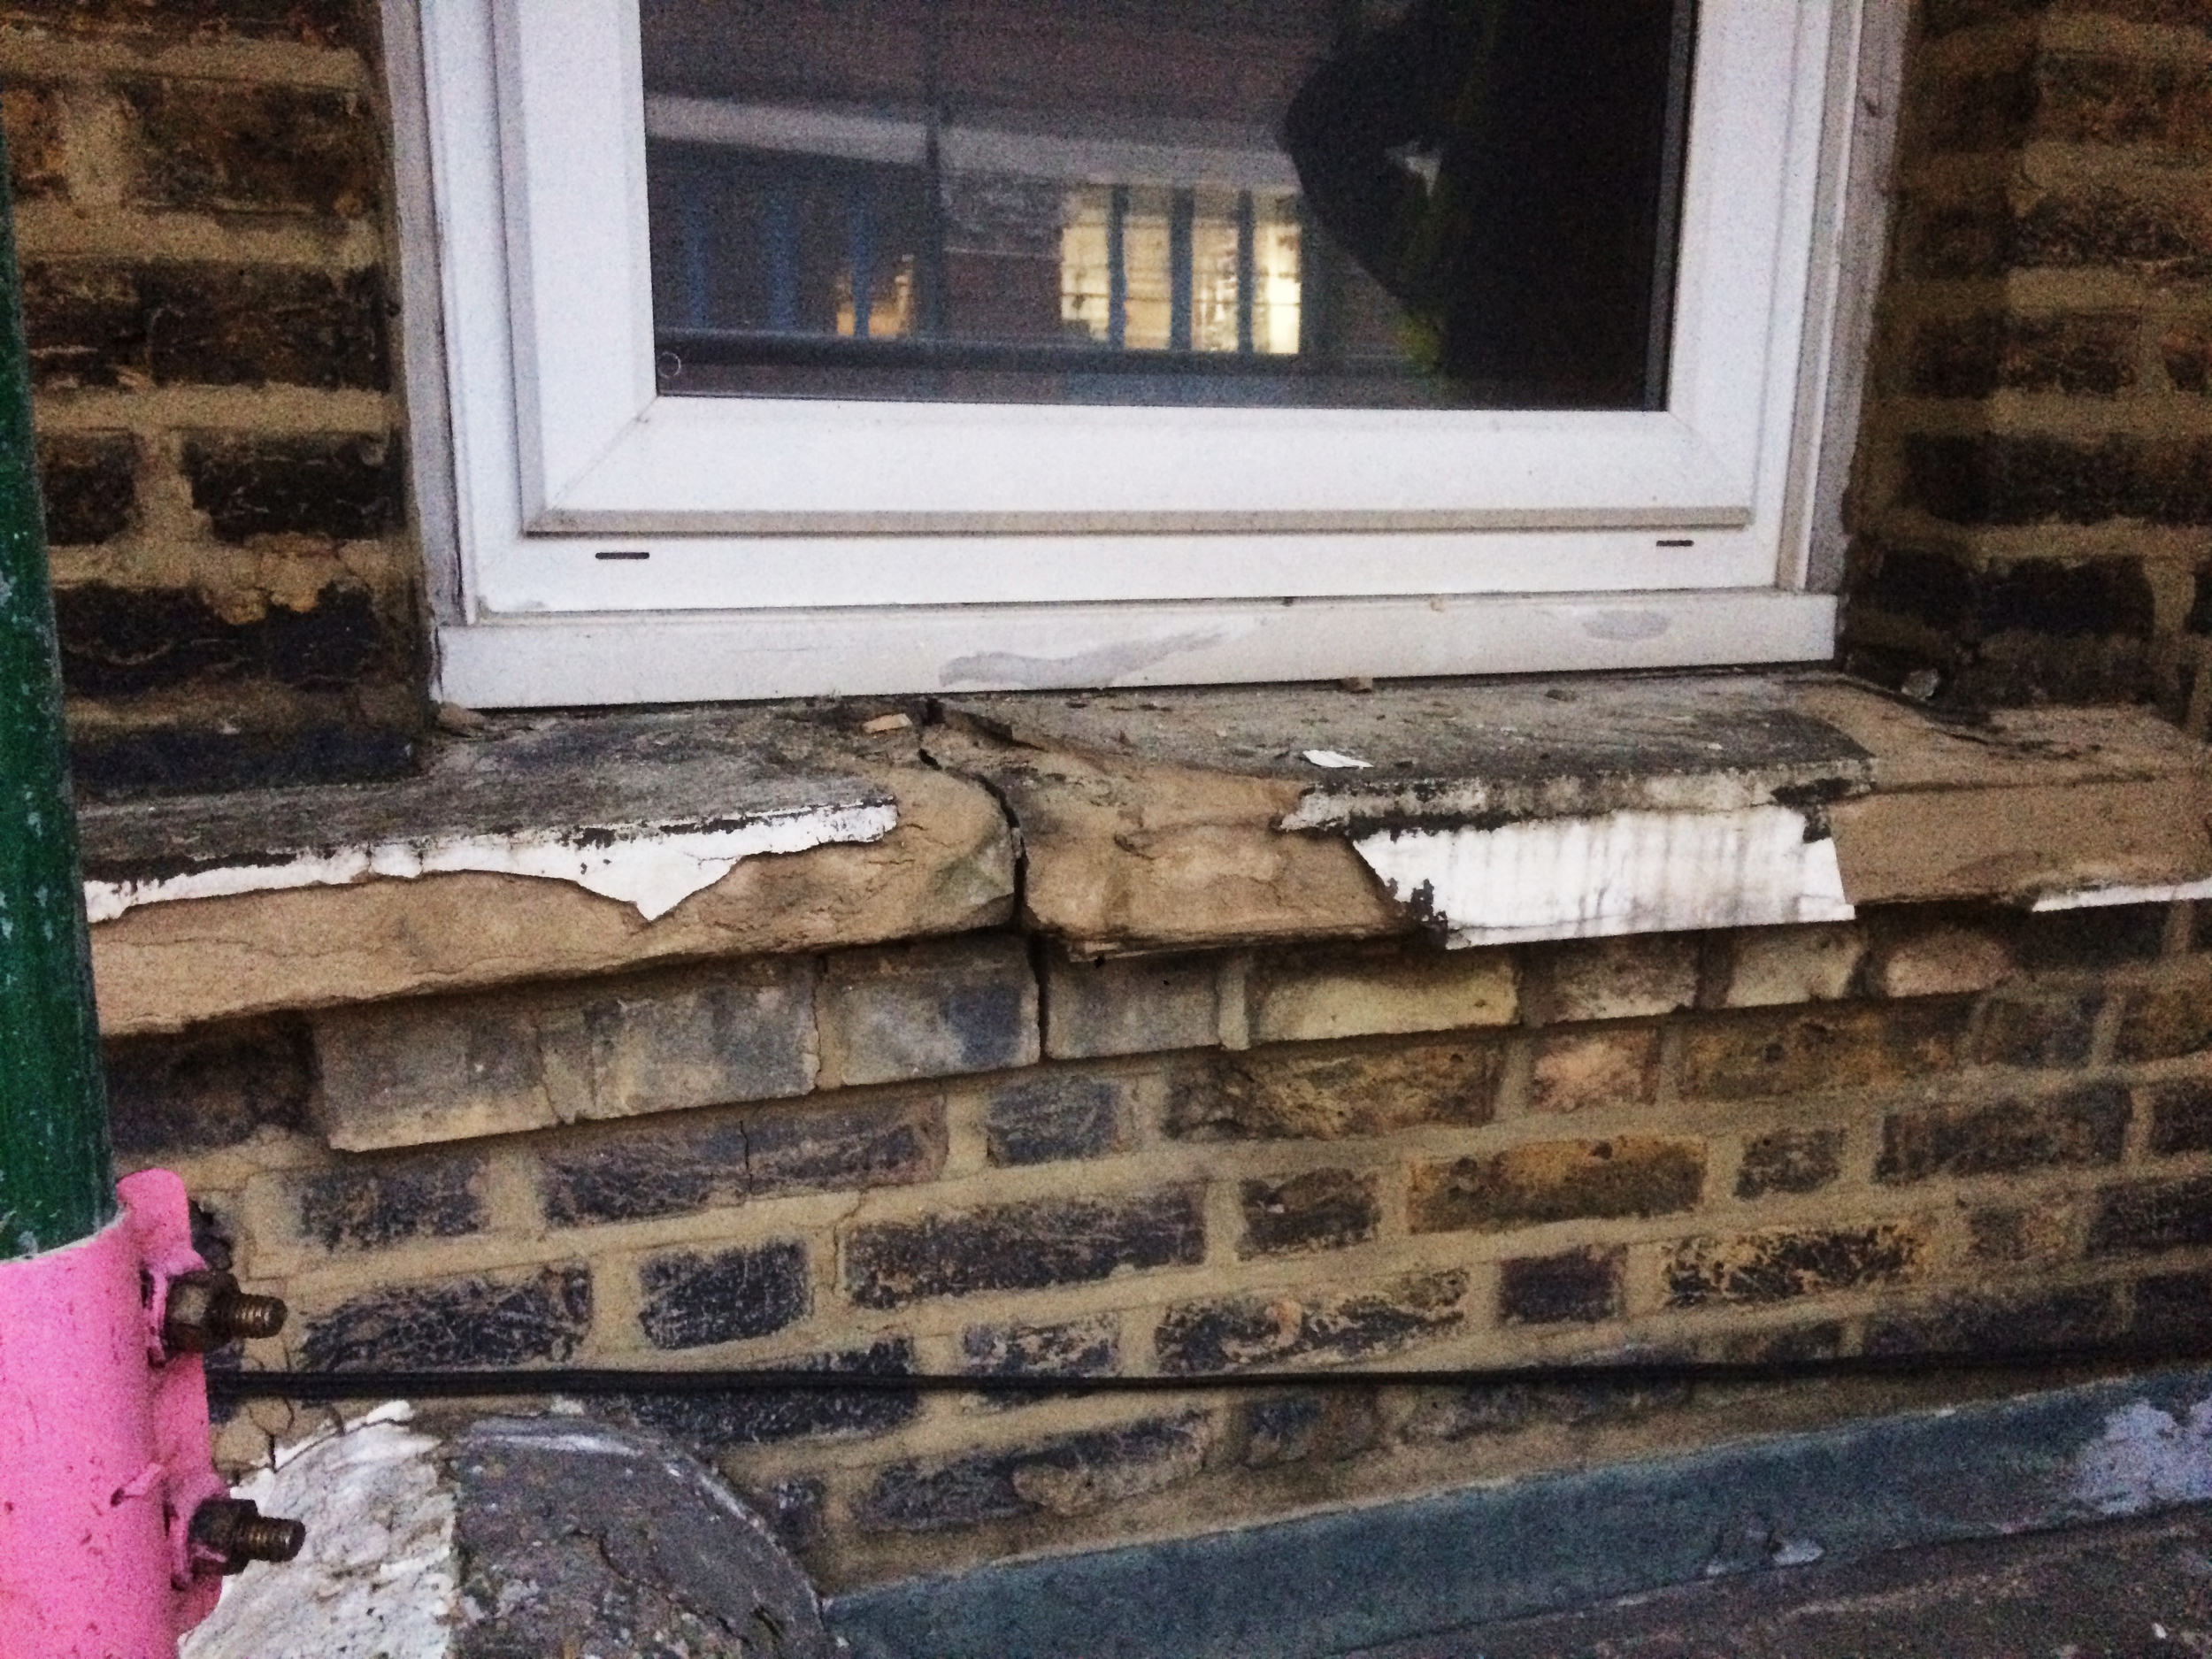 #NHRenovations #Painter #Decorator #London #BroadhurstGardens #Westhampstead #Windowsill #Commercial #Exterior #Building